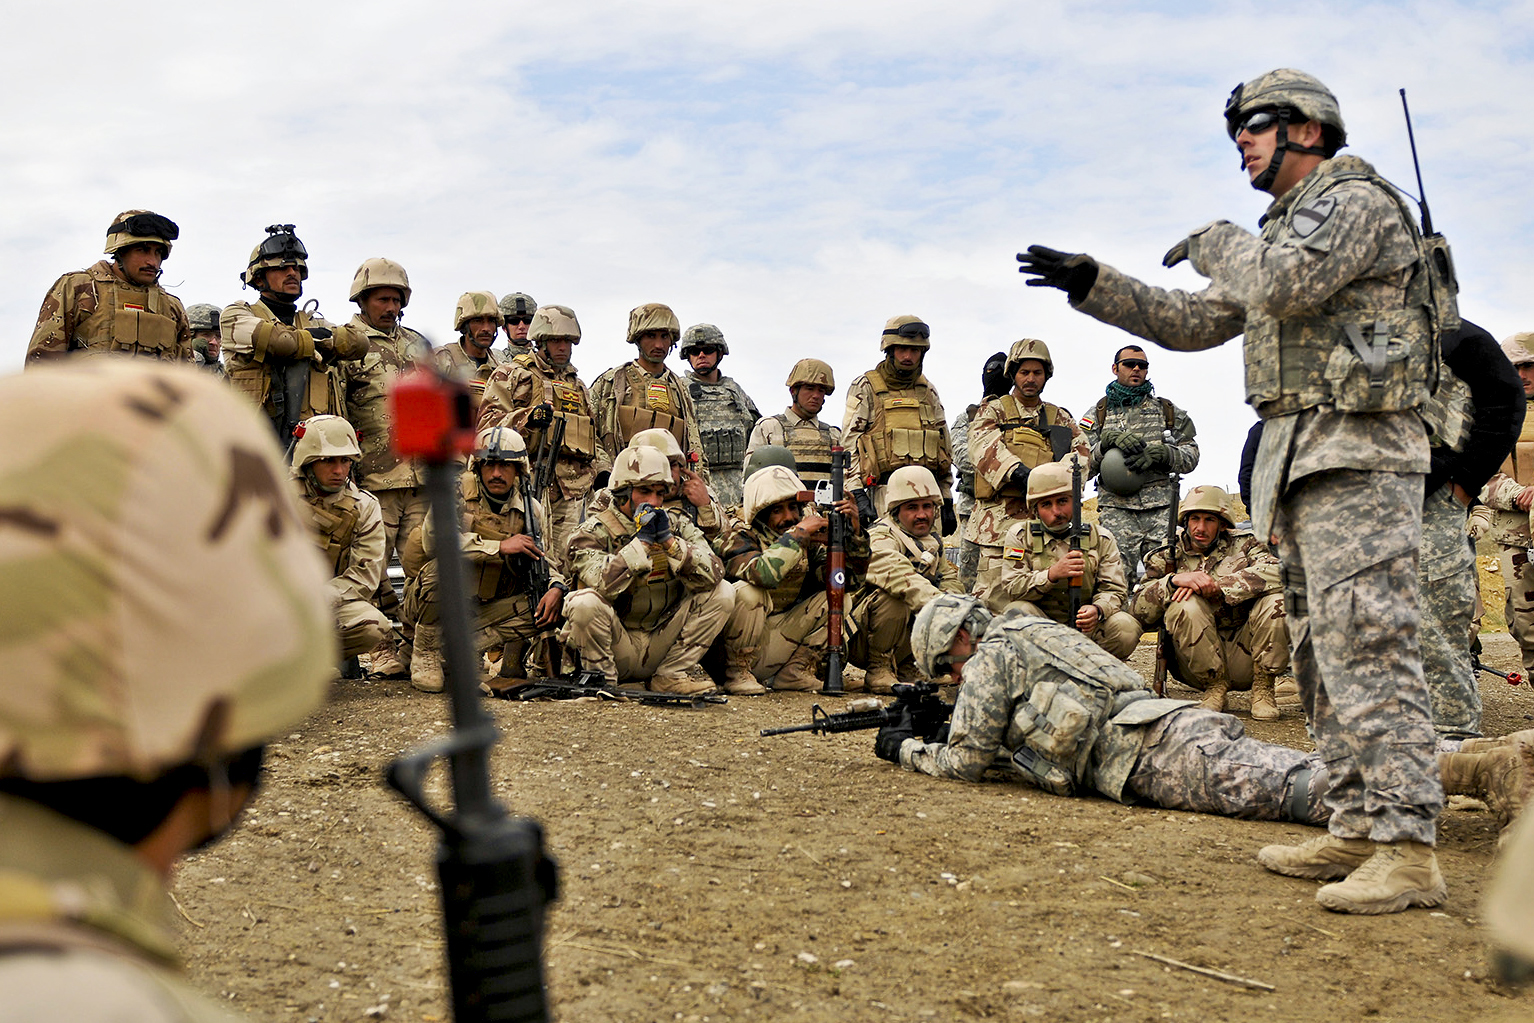 http://upload.wikimedia.org/wikipedia/commons/5/58/Defense.gov_News_Photo_110202-A-8572M-042_-_U.S._Army_Sgt._Kevin_Murphy_right_instructs_Iraqi_army_soldiers_on_individual_movement_techniques_during_a_class_at_the_Ghuzlani_Warrior_Training.jpg